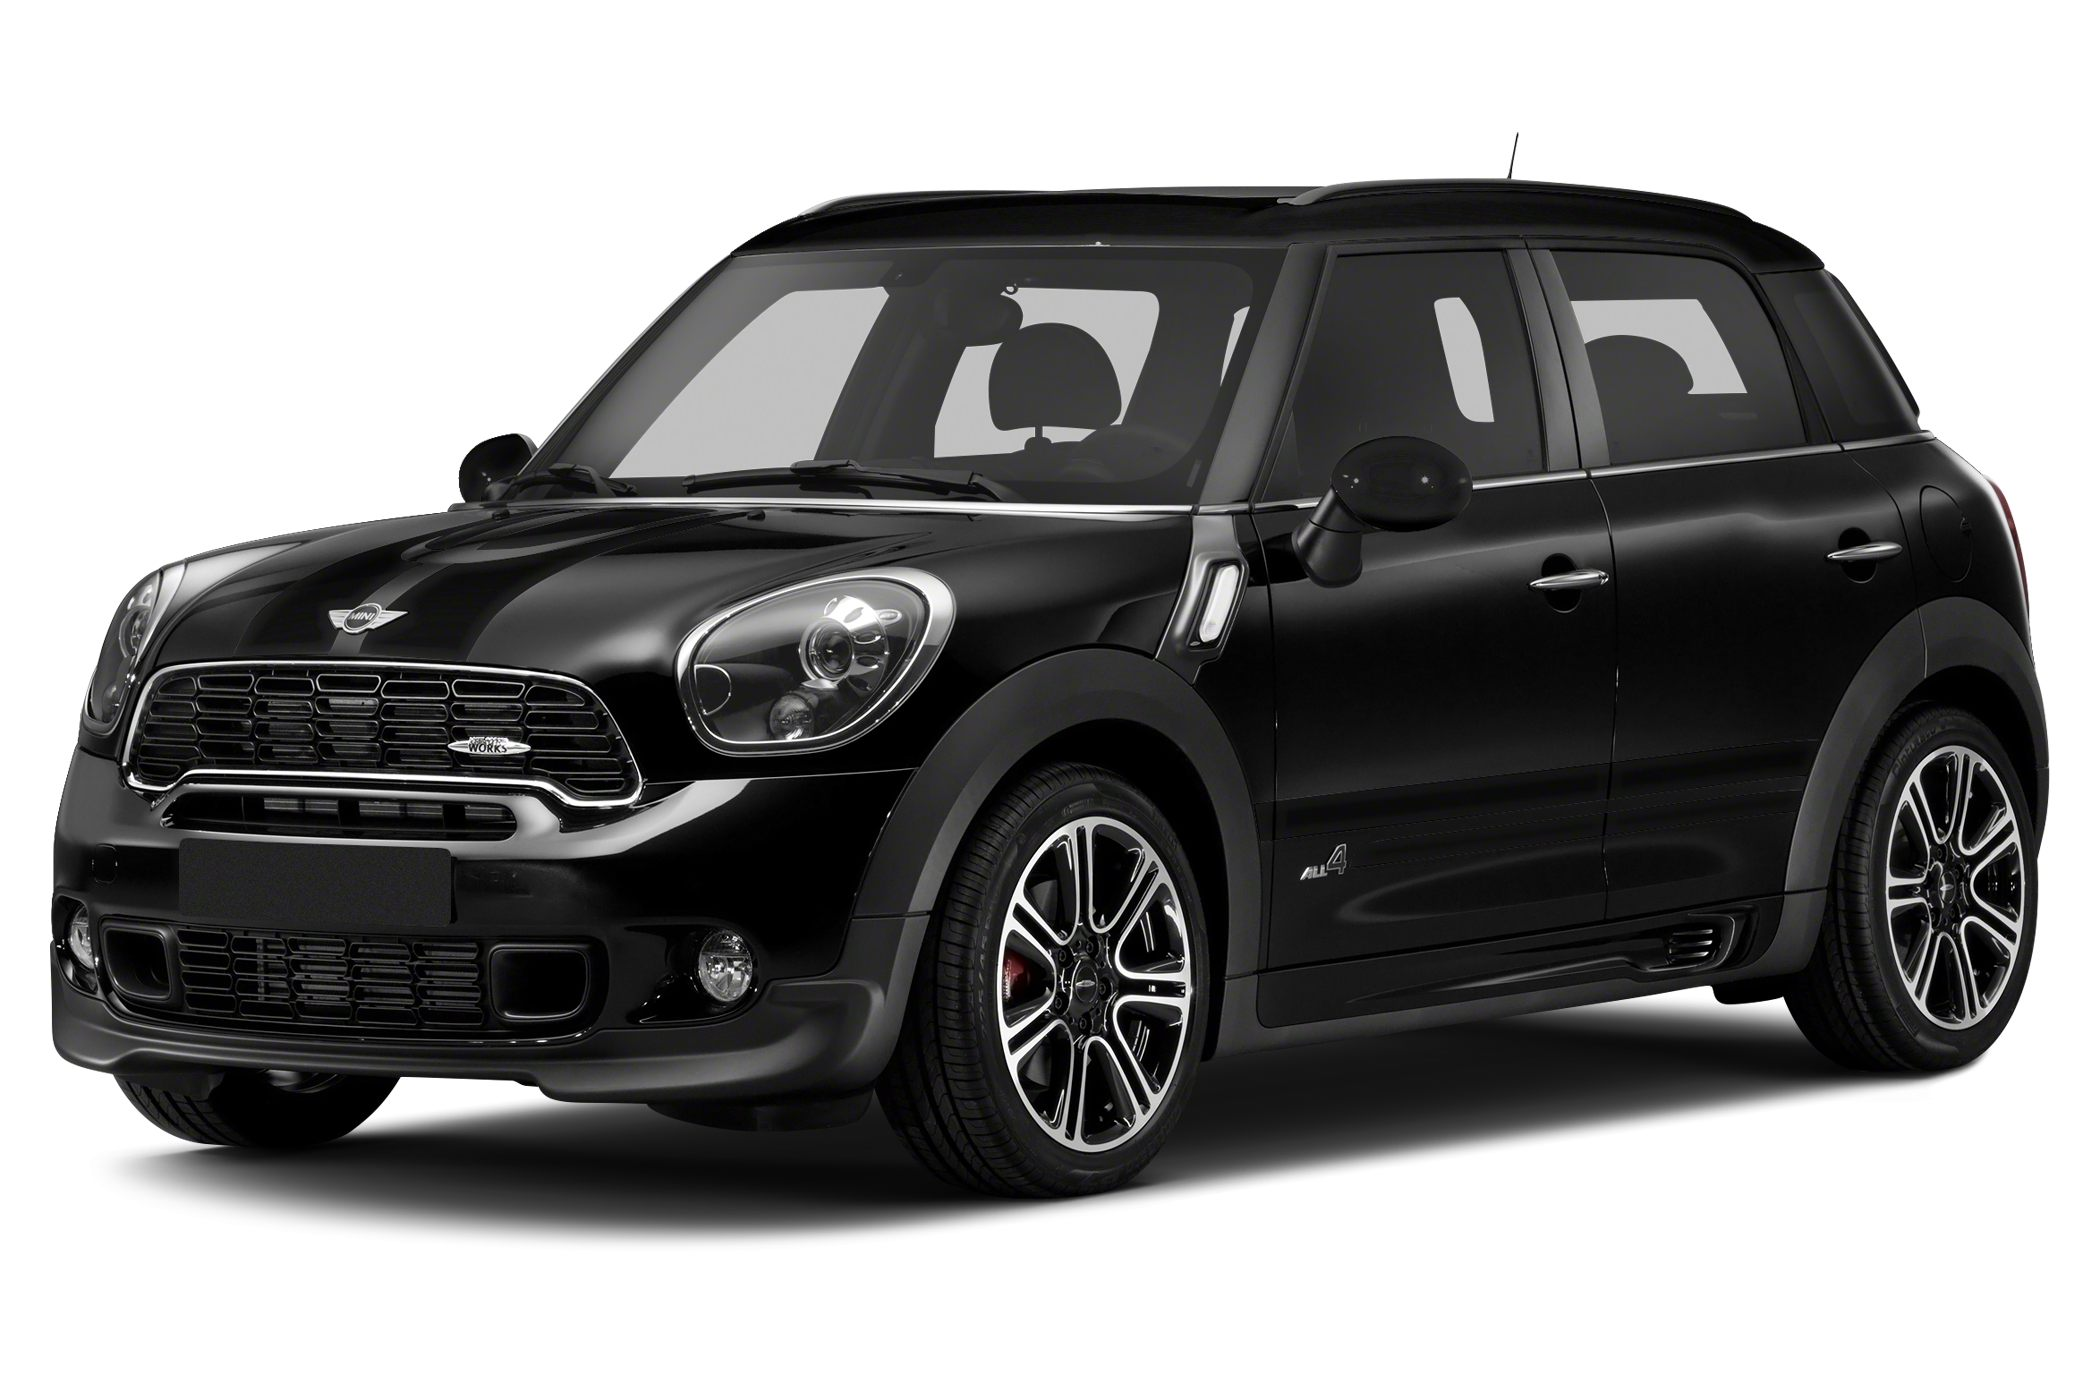 2014 mini countryman specs aol autos autos post. Black Bedroom Furniture Sets. Home Design Ideas